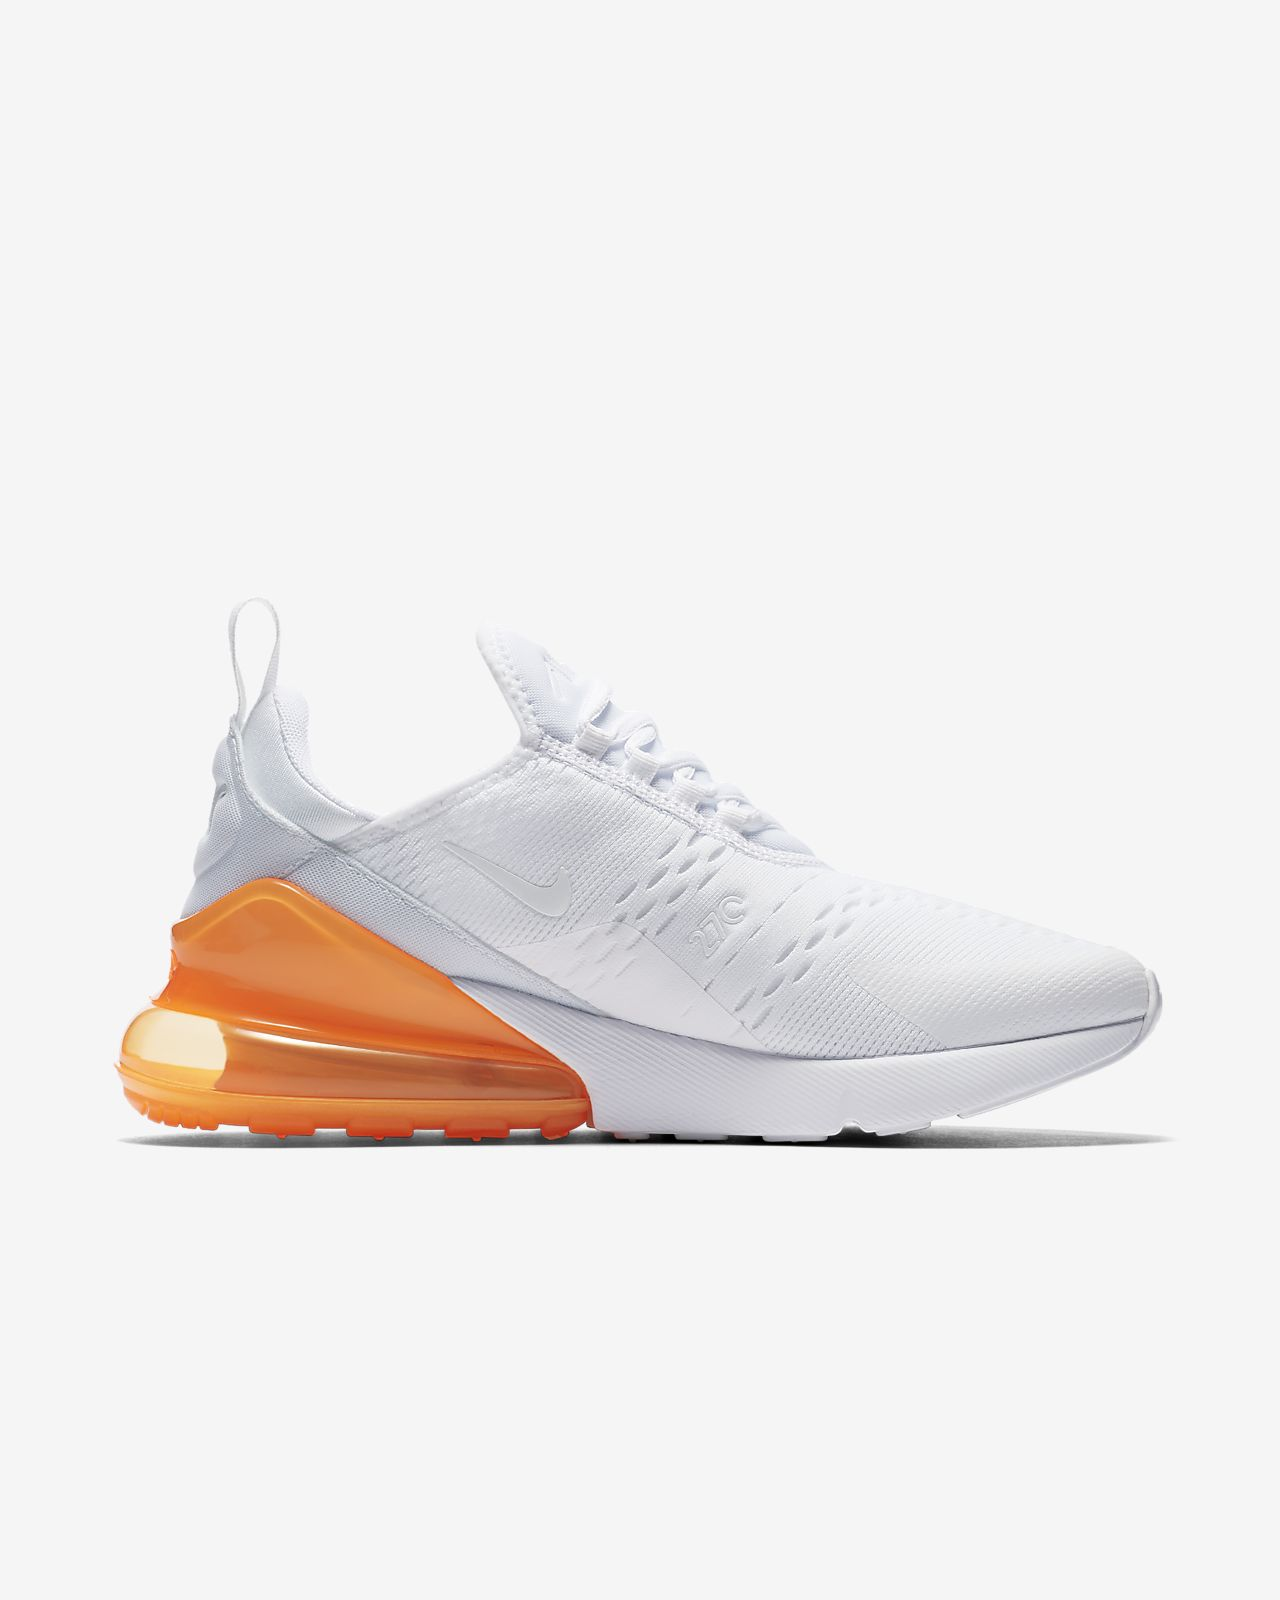 0a5a58a38b4 Nike Air Max 270 Menu0027s Shoe. HUHuarache-nike air max 270 feel ...